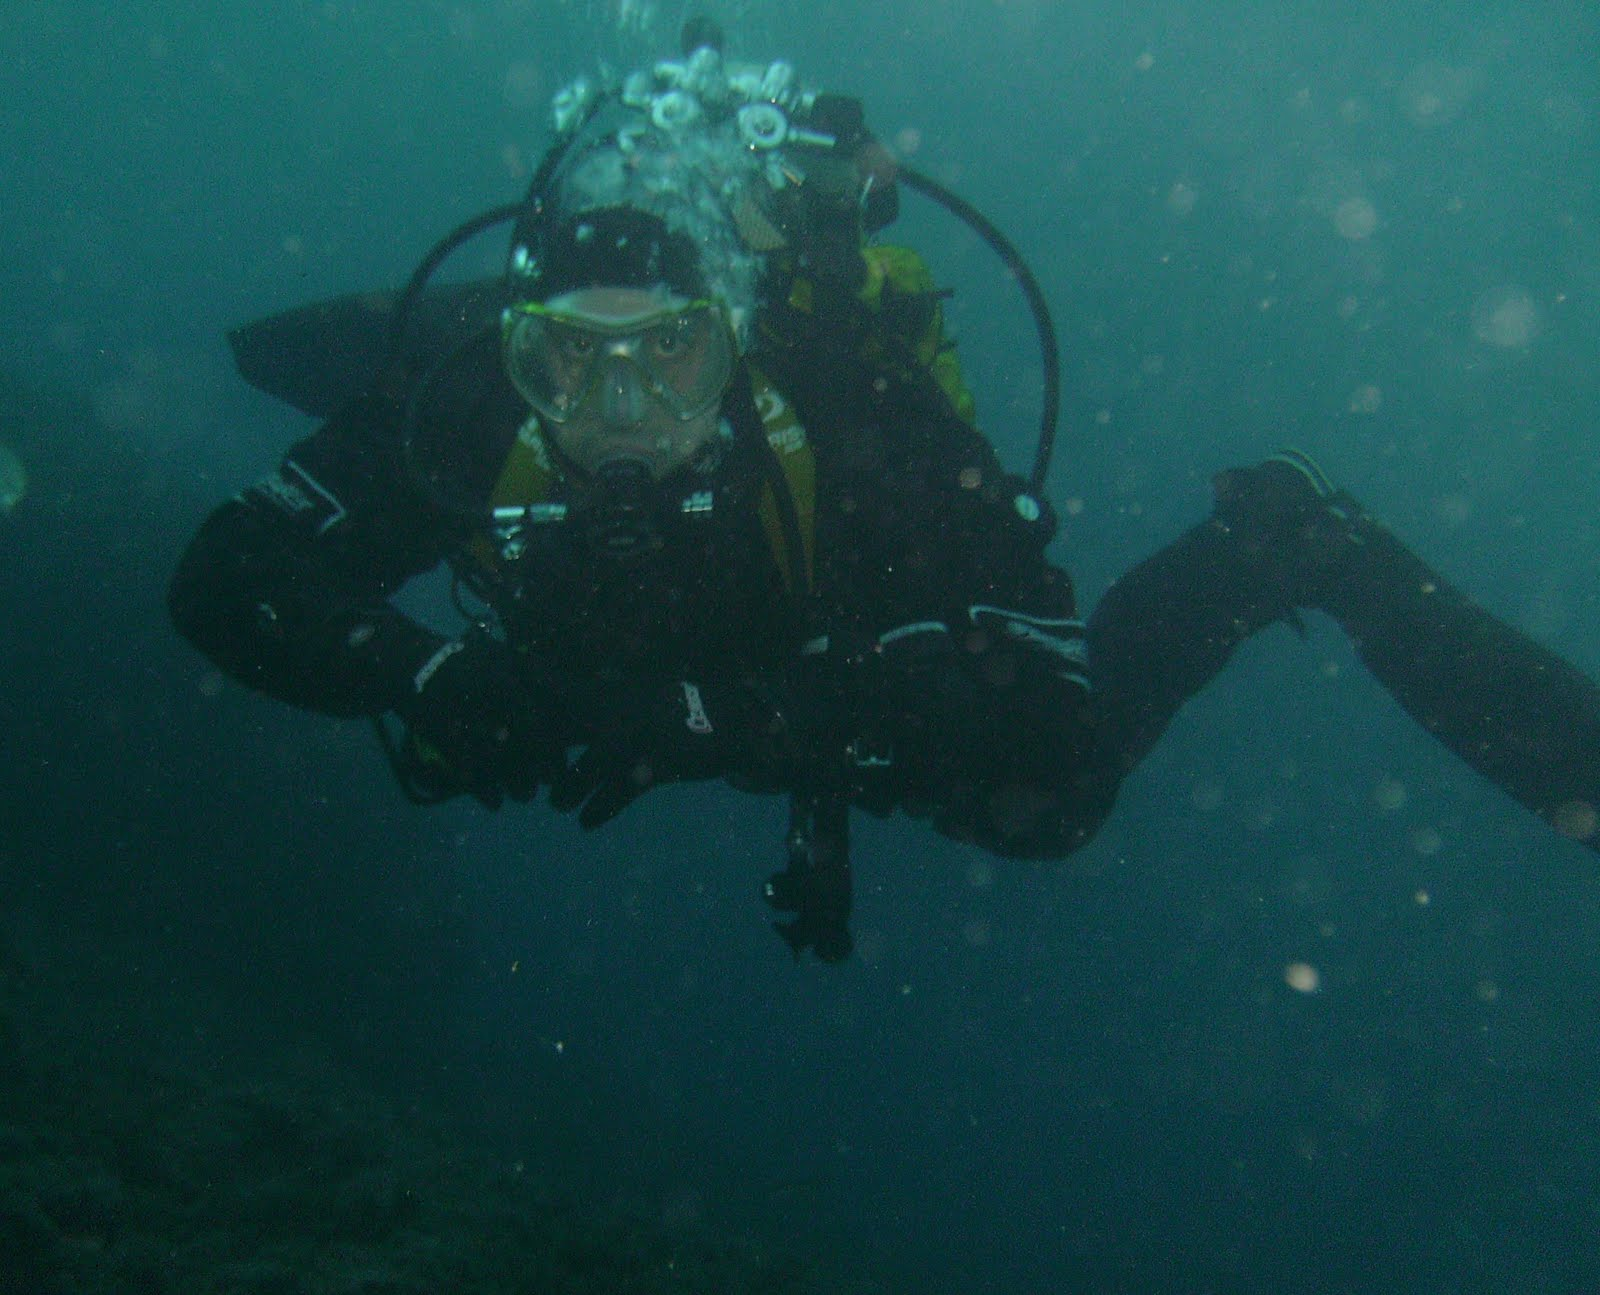 Maurizio Babini by GRAVITY ZERO Diving TEAM